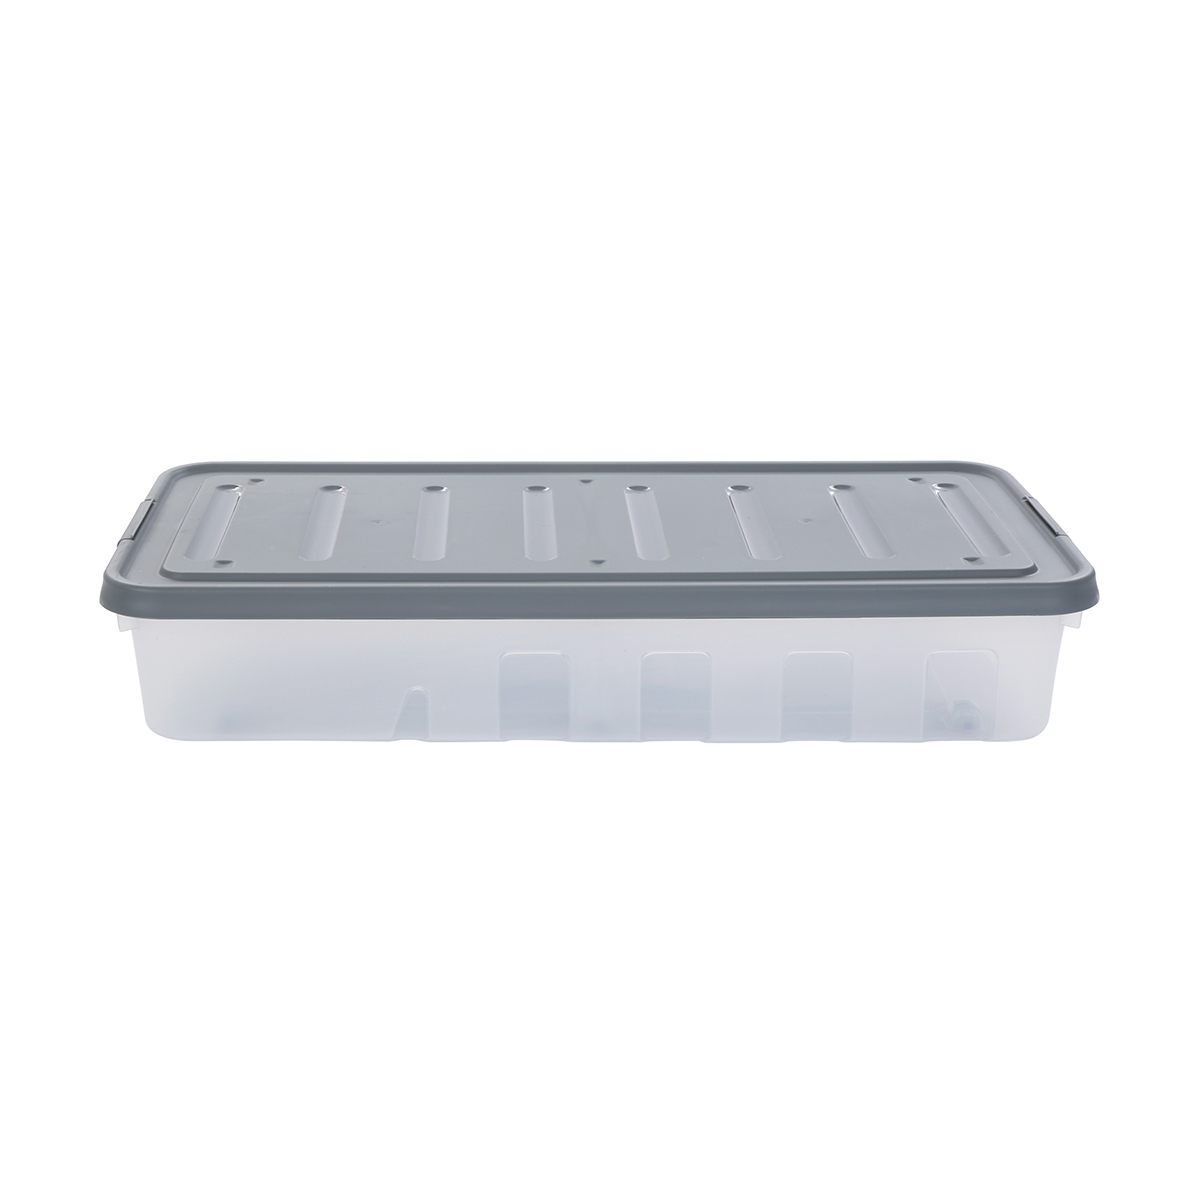 36l Underbed Storage Container On Wheels Storage Containers